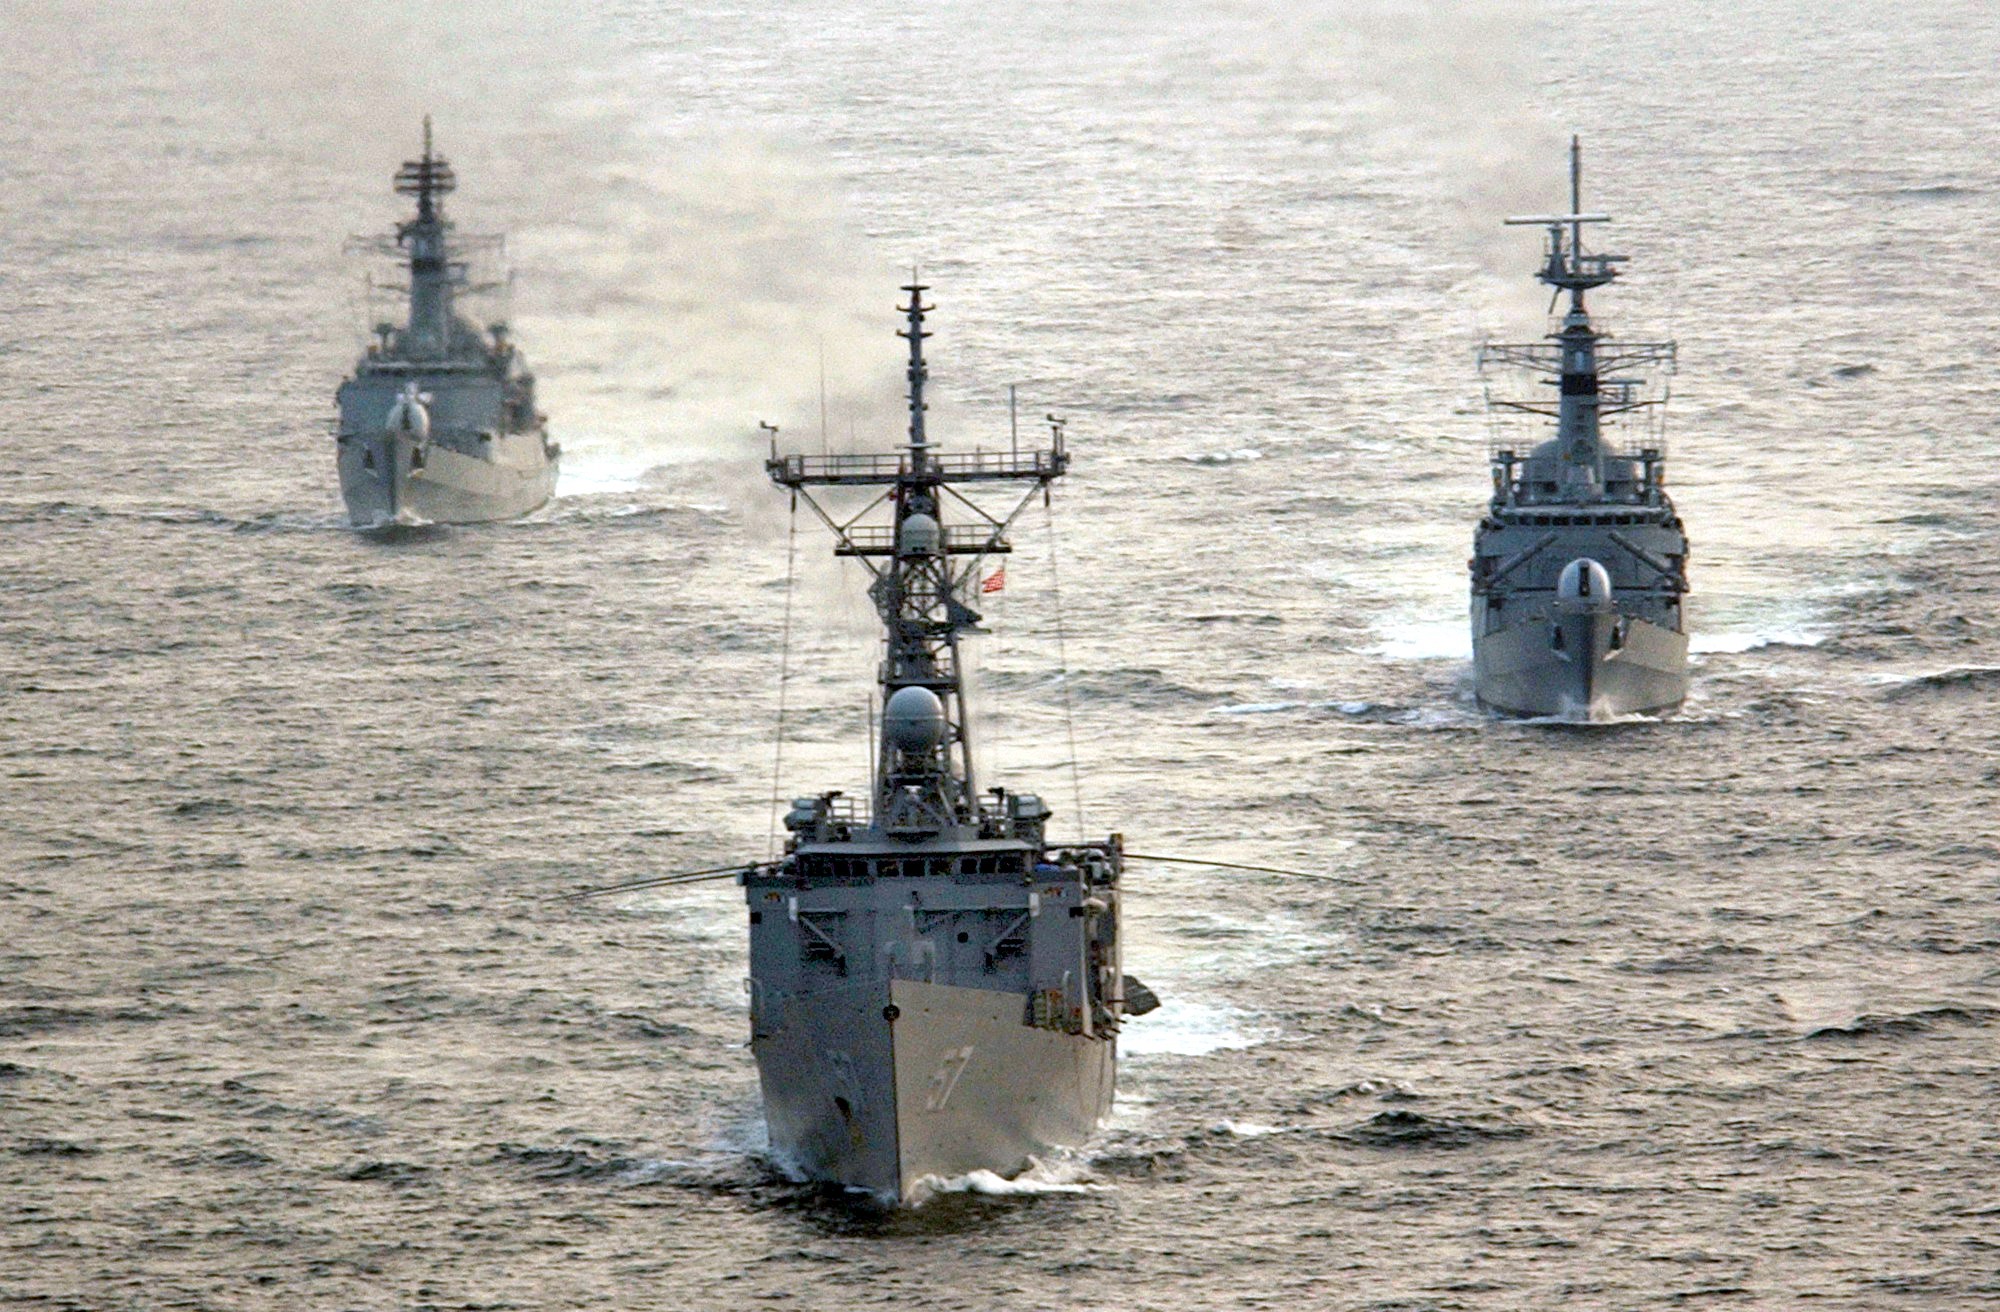 Pakistan navy vessels